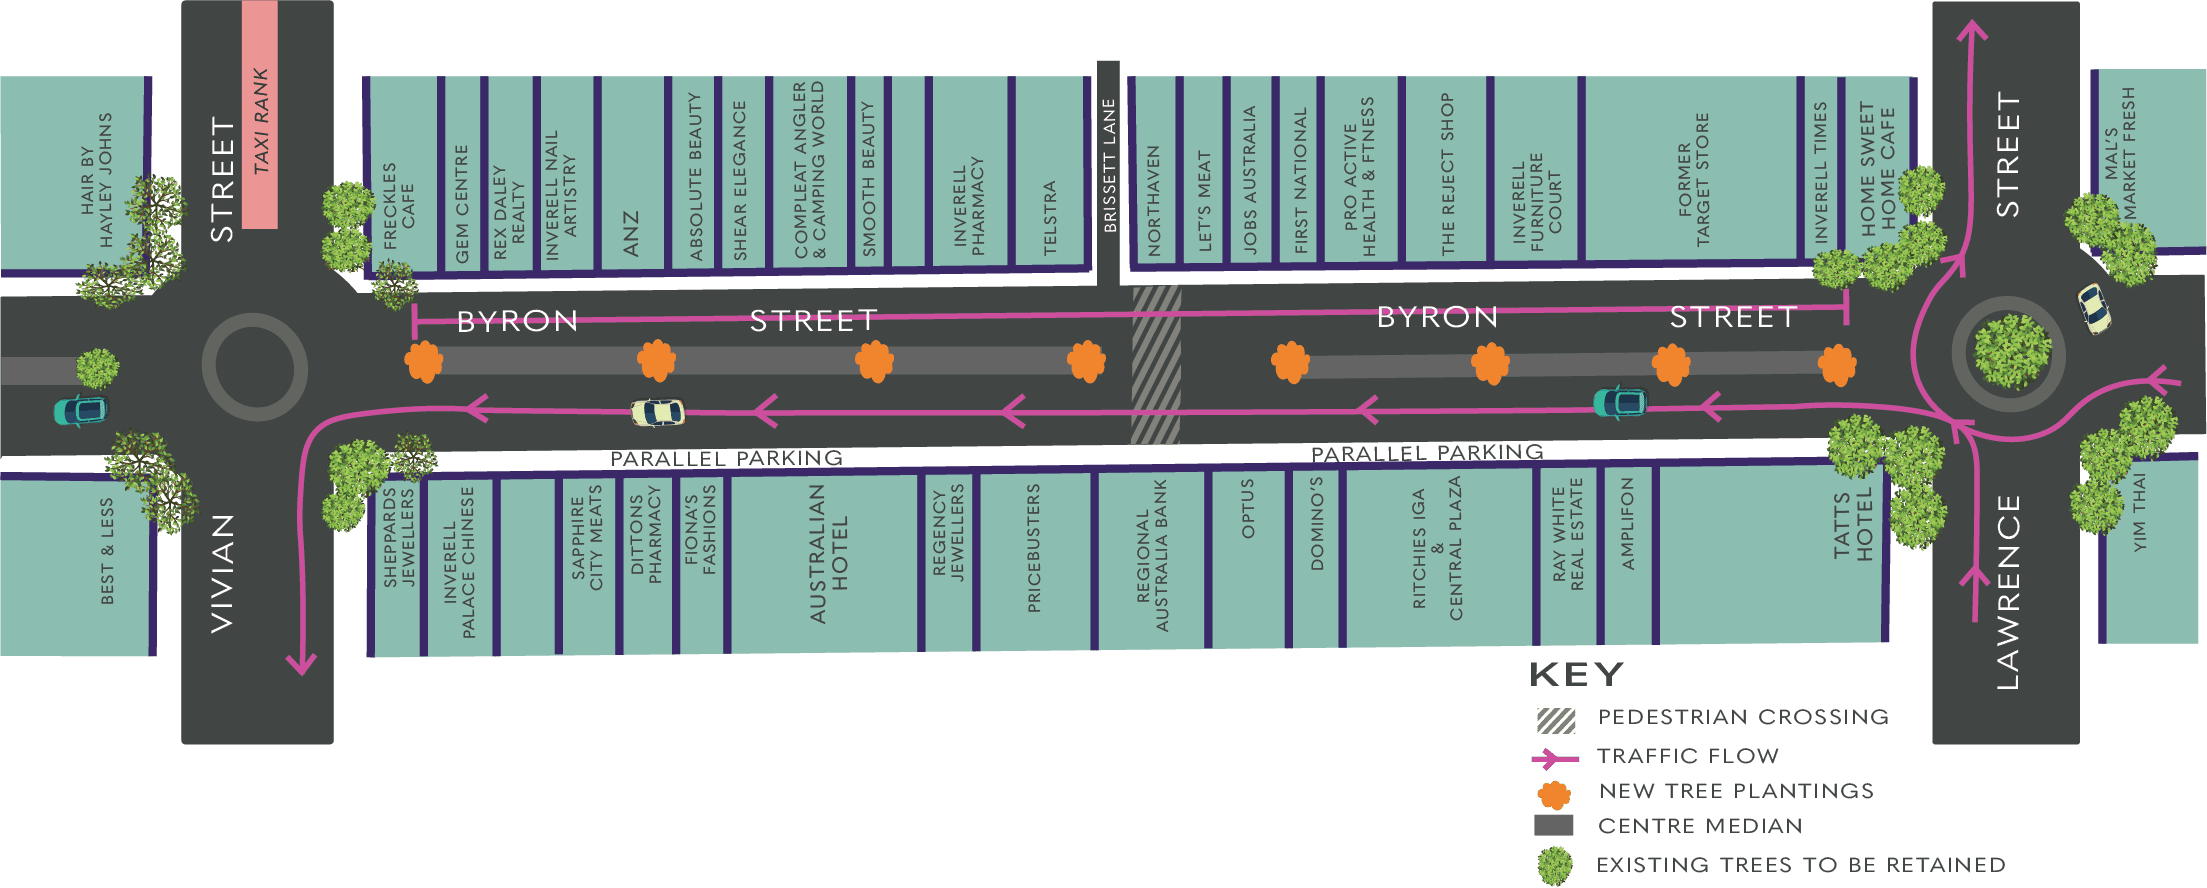 Image: Stage one traffic arrangements for the Town Centre Renewal Program, commencing 14 January 2021.